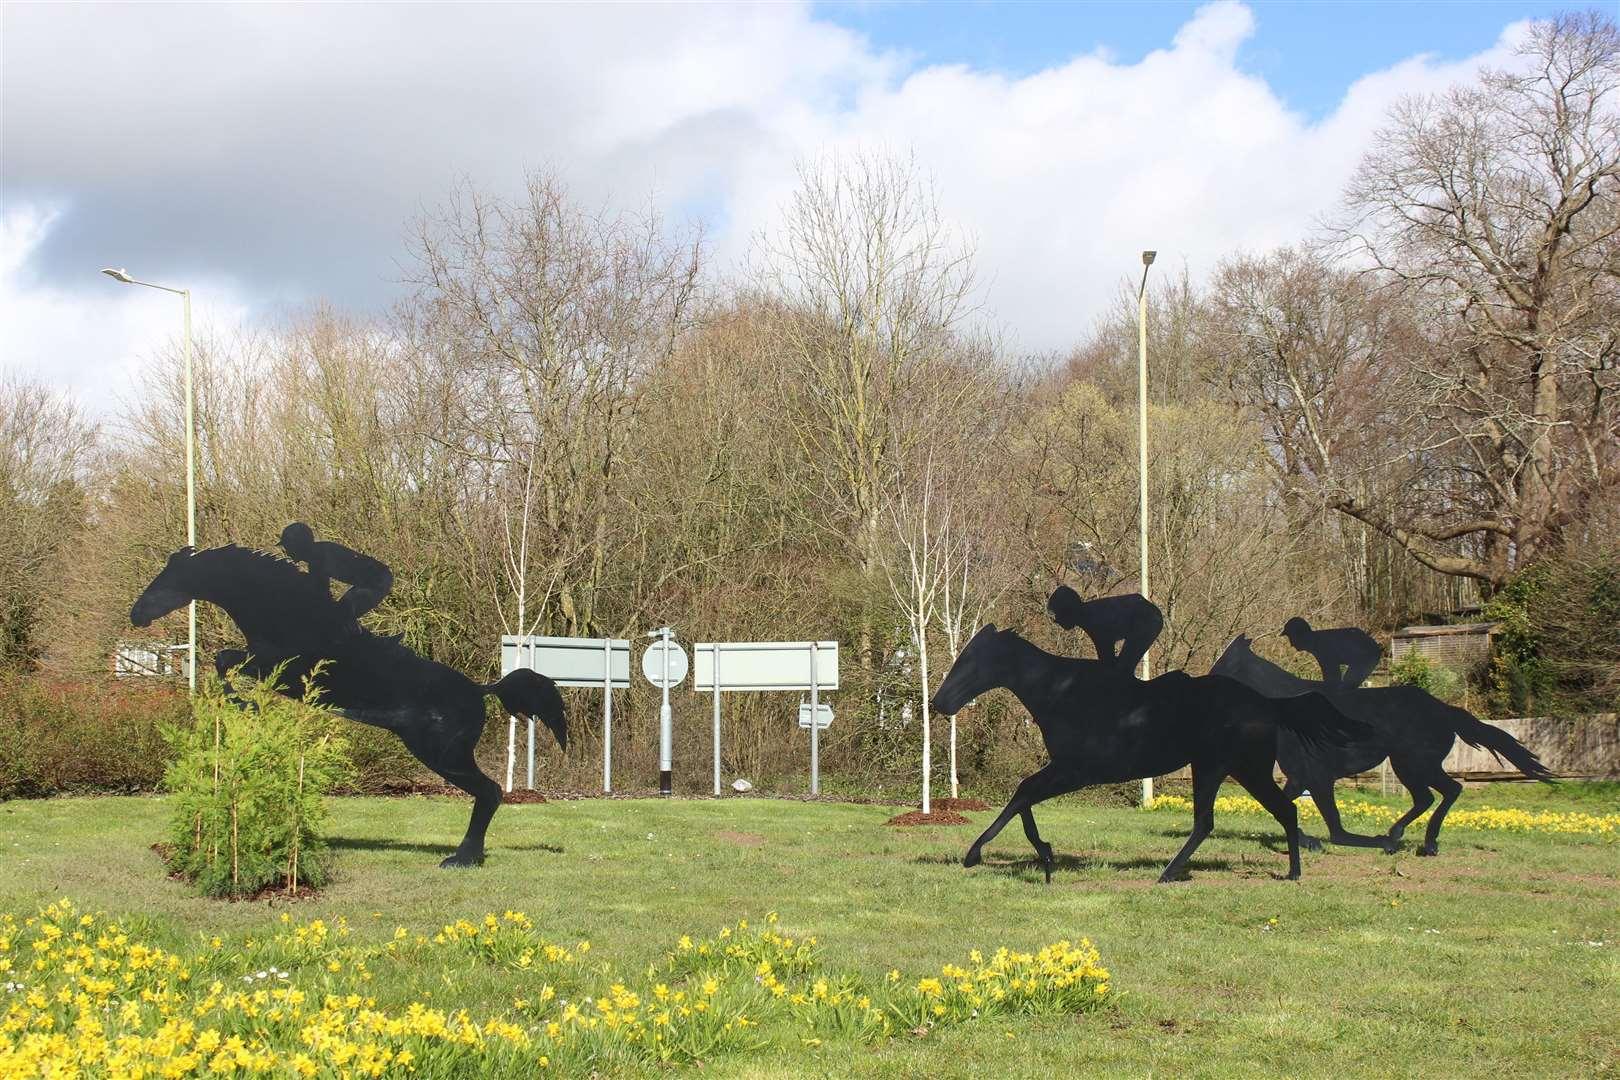 A roundabout on the A20 had horses placed on it earlier this year. Picture: Barry Goodwin